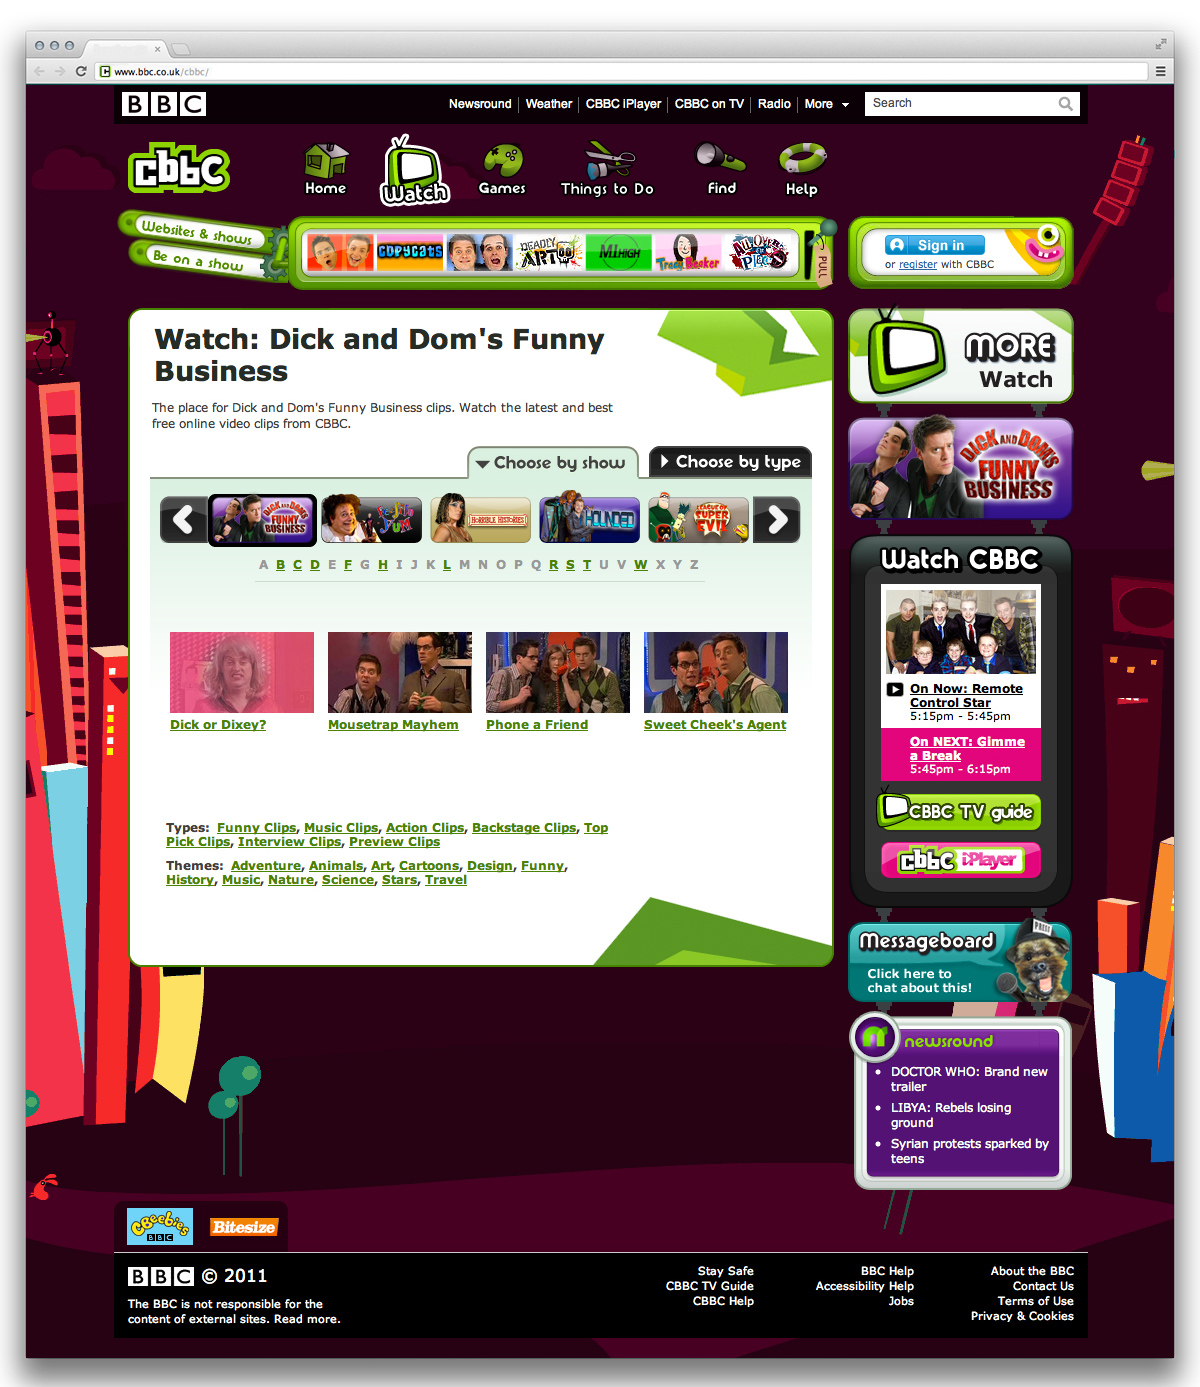 CBBC Watch Page